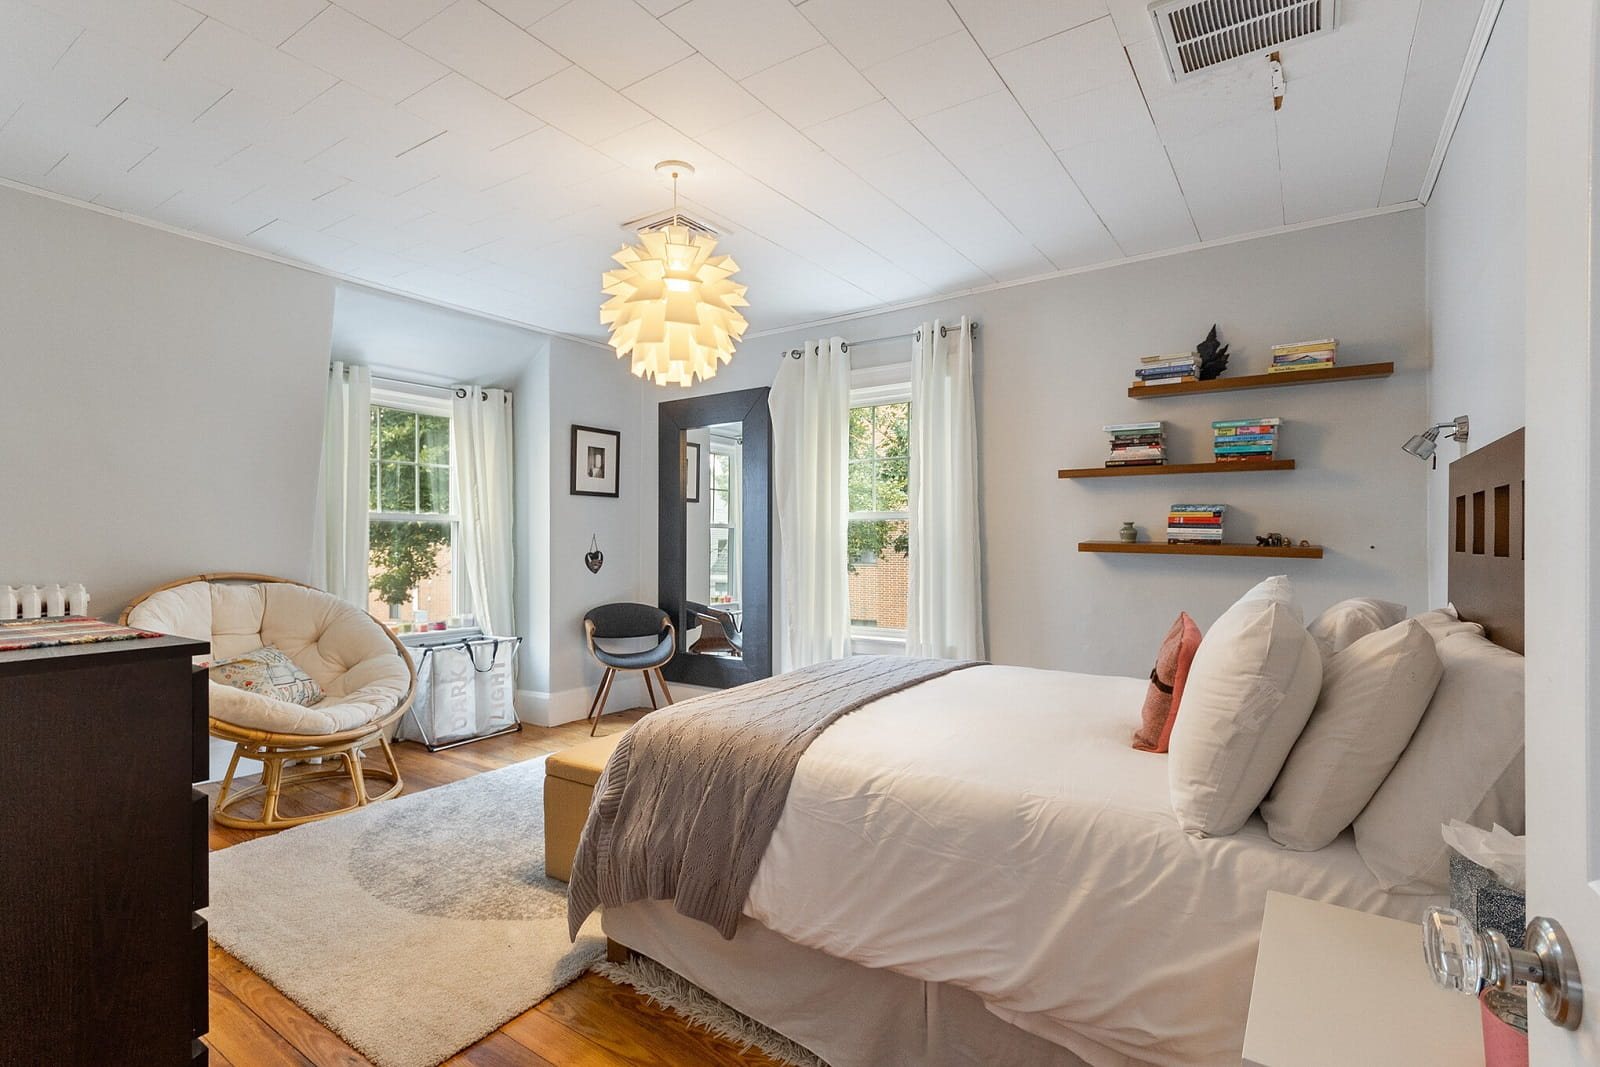 Real Estate Photography in Cambridge - MA - USA - Bedroom View